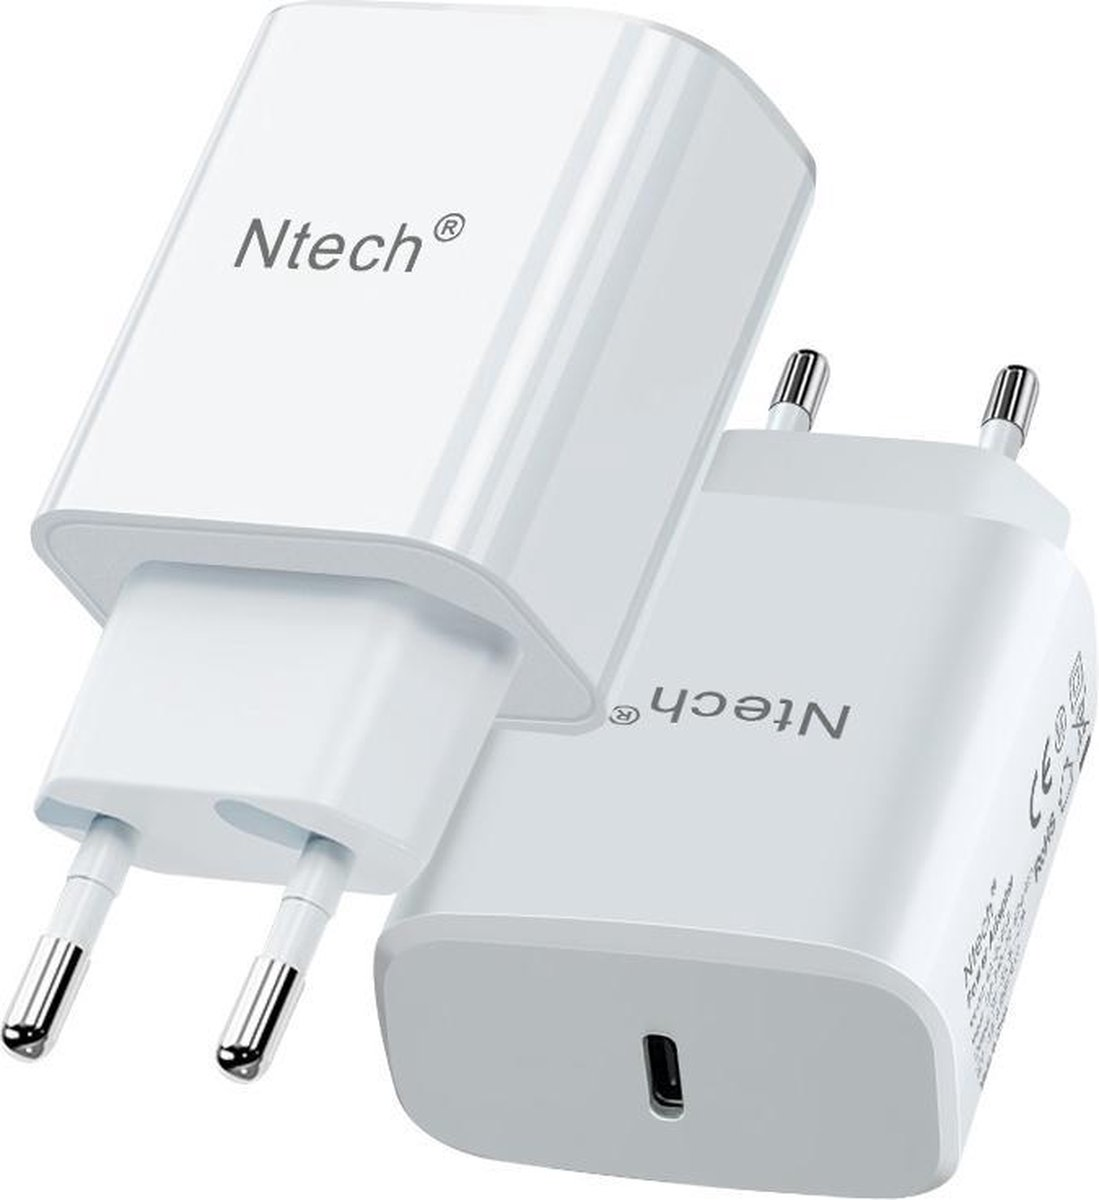 oplader iphone 12 - Ntech - oplader iphone 11 - apple oplader - iphone oplader - USB C oplader apple 20W - USB C oplader Samsung - usb c adapter apple - lader iphone 12 - lader iphone 11 wit